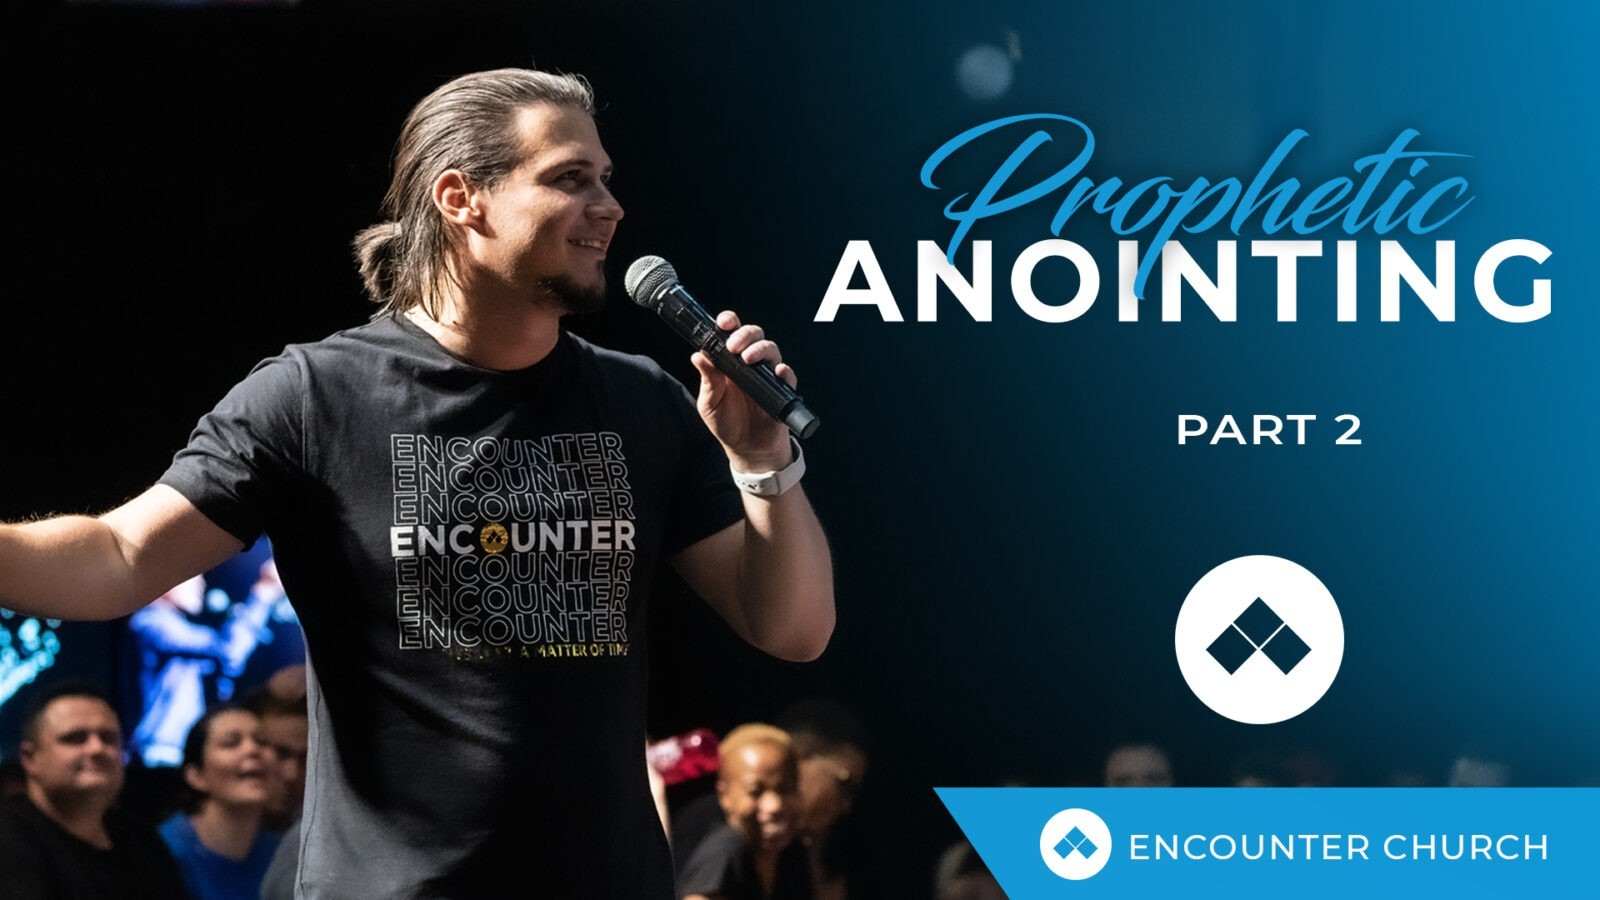 The Prophetic Anointing Part 2